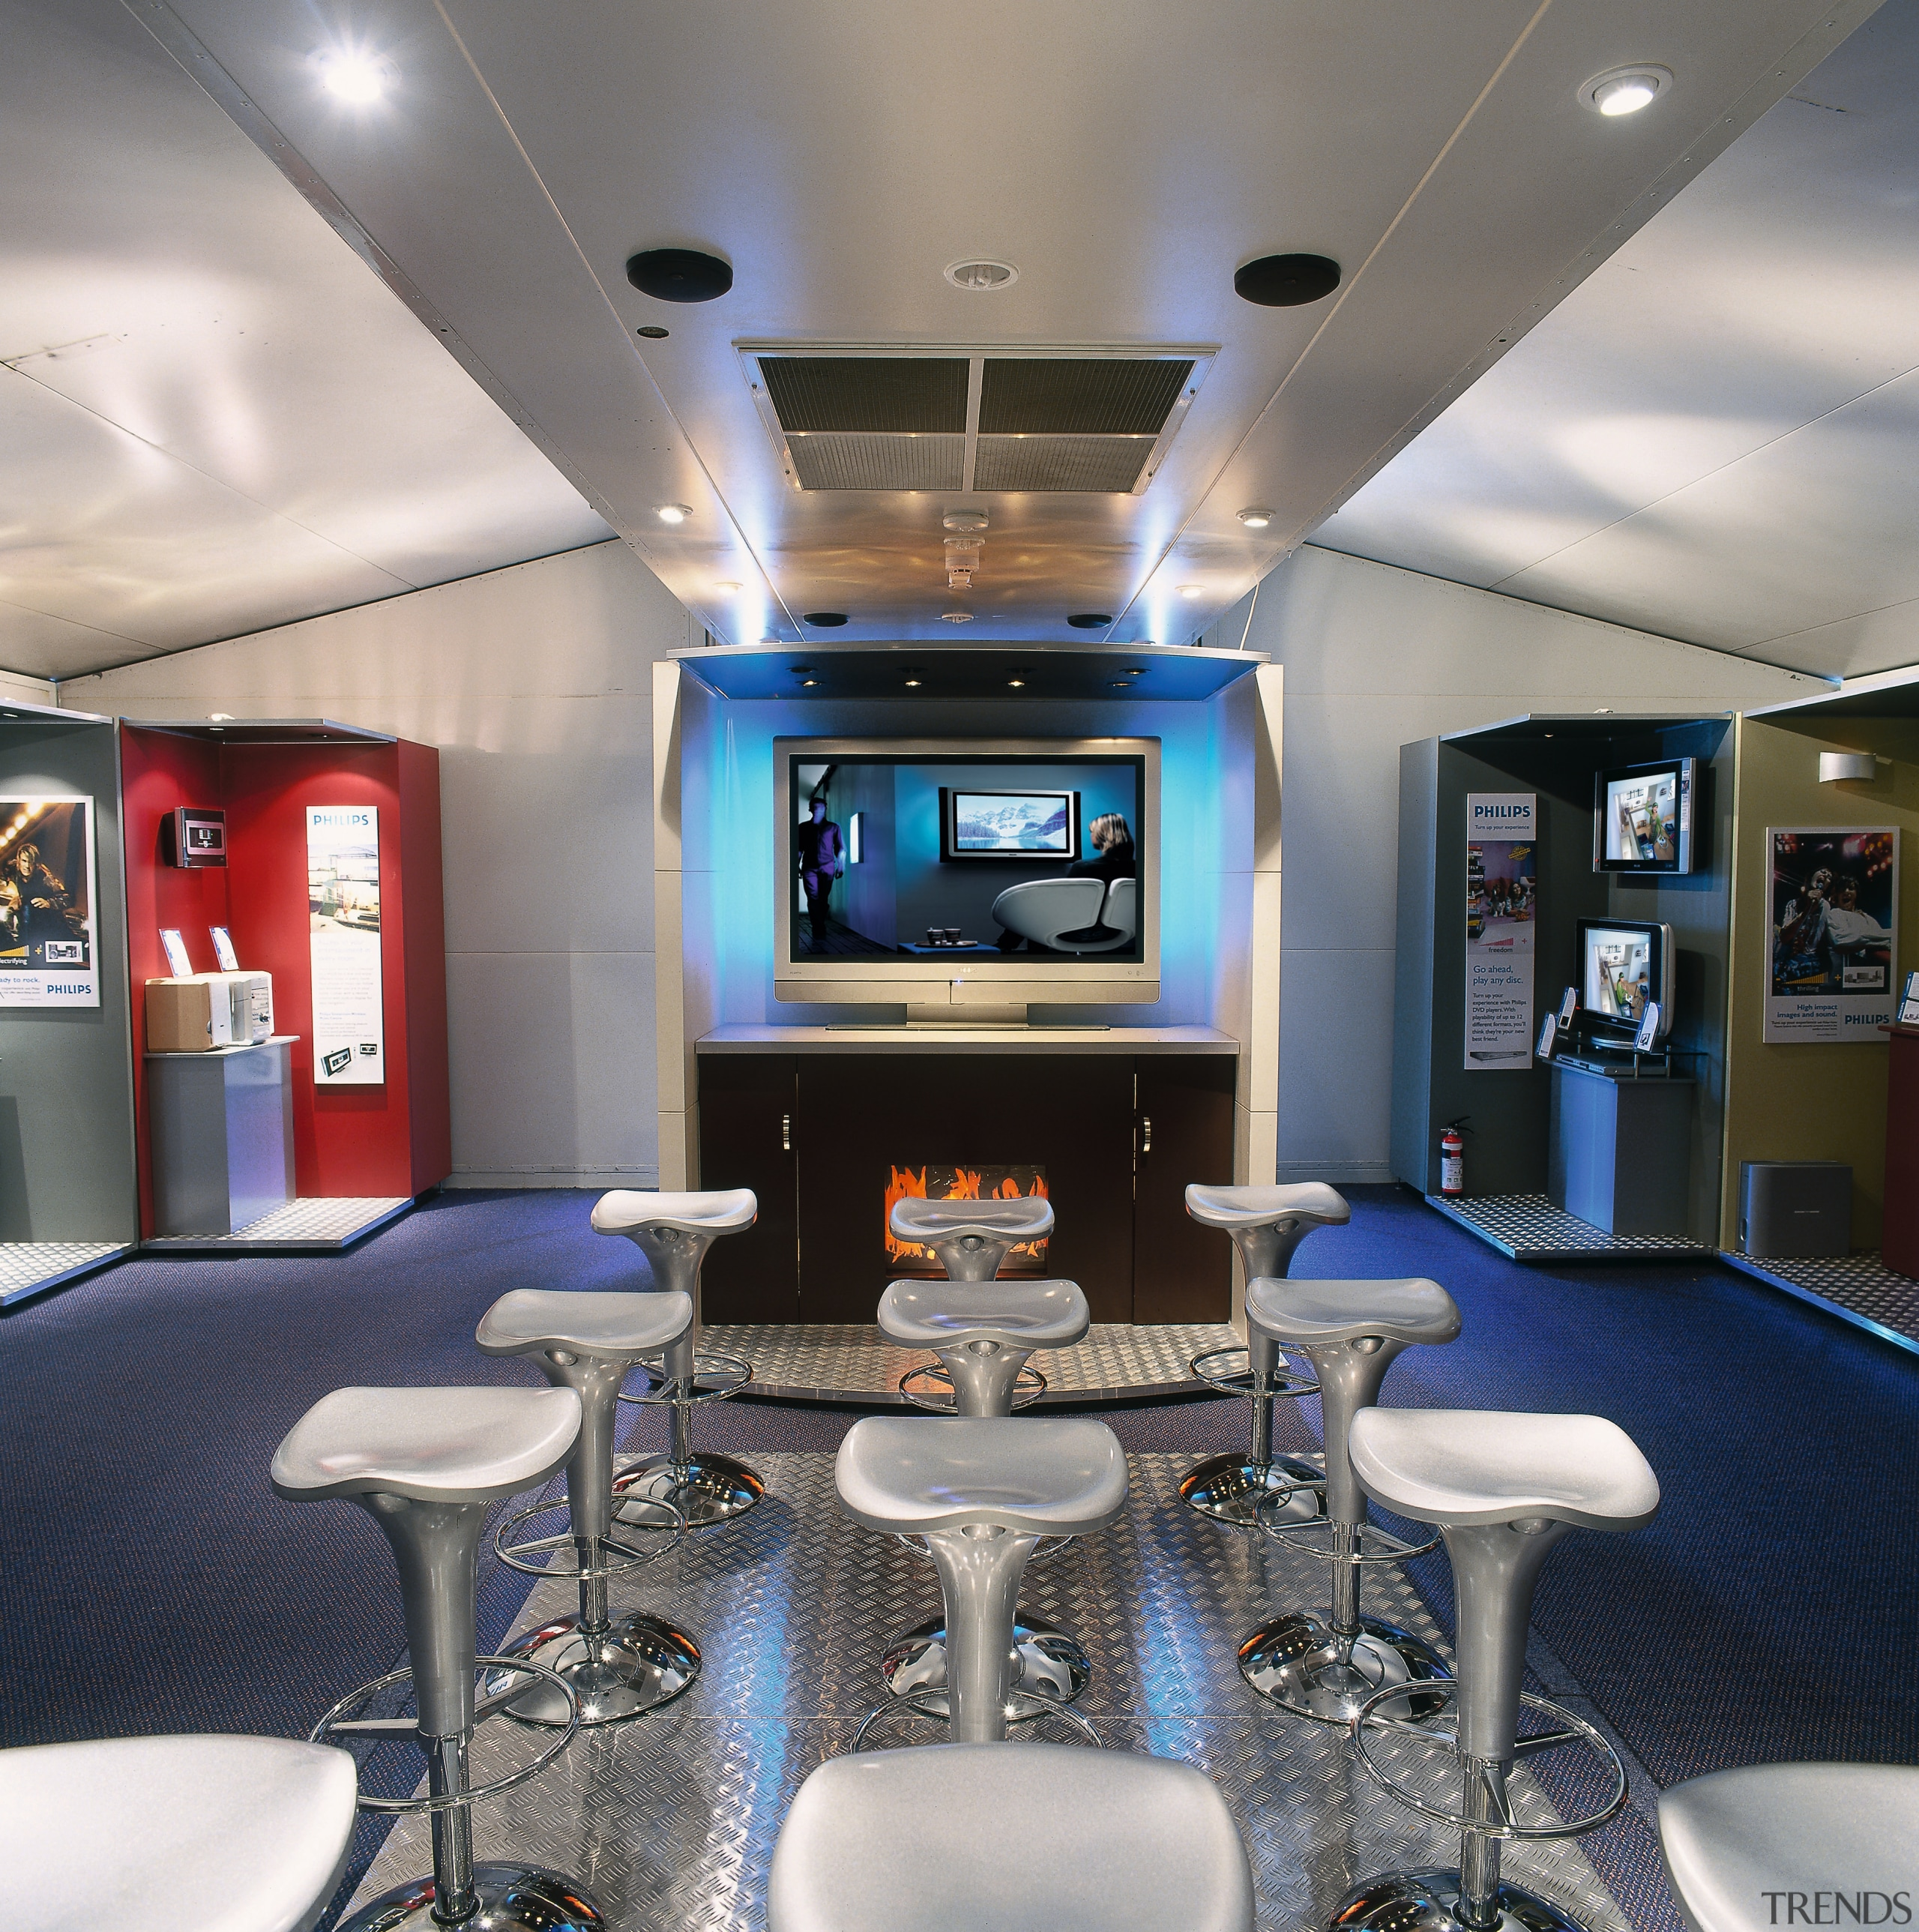 view of the phillips elctronic show room for interior design, gray